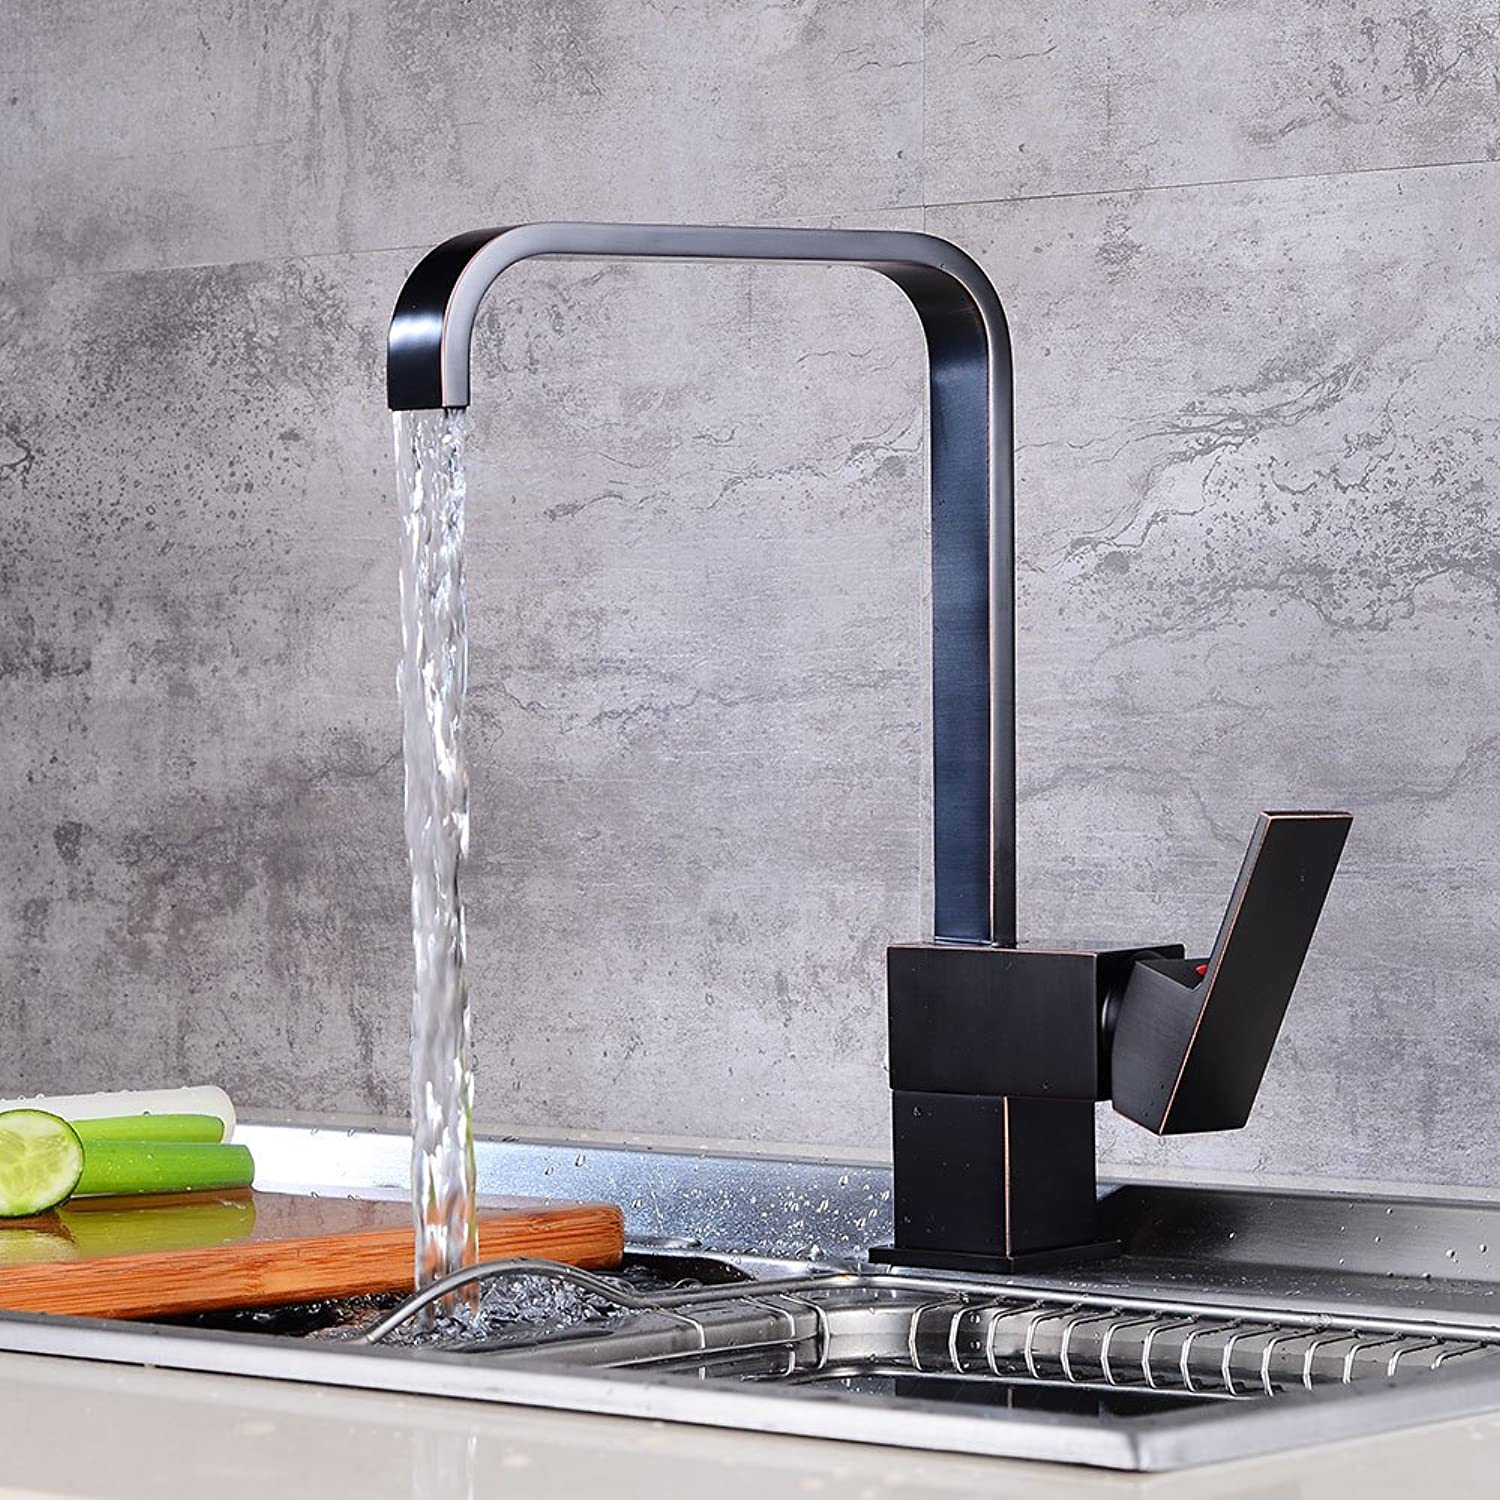 Sink Tap European Black Kitchen Dish Dish Cold Hot redary Dish Water Tap Water Faucet